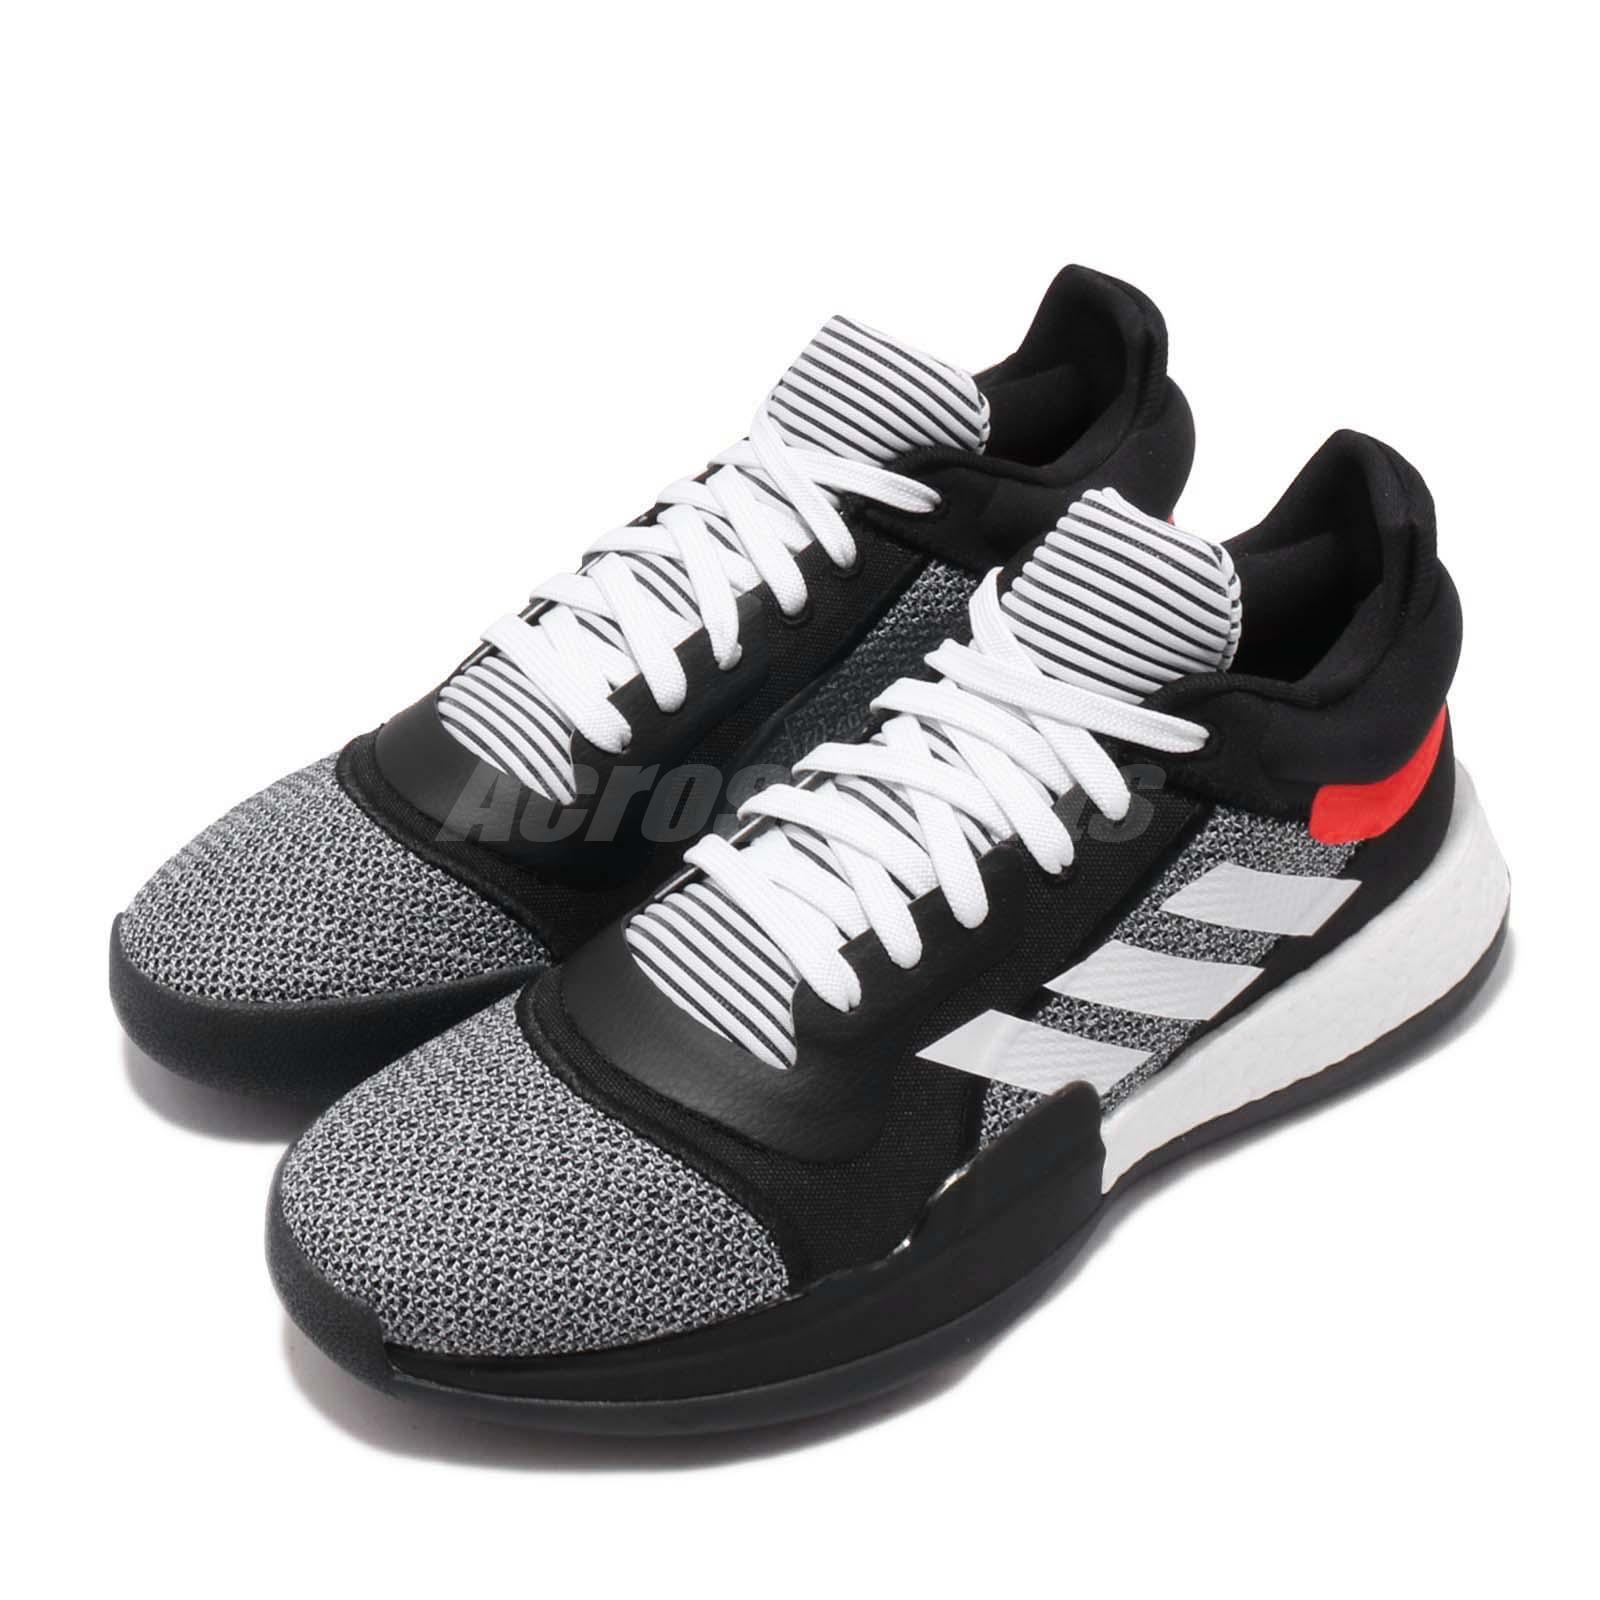 adidas Marquee Boost Low Black White Red Men Basketball Shoes Sneakers  D96931 | eBay